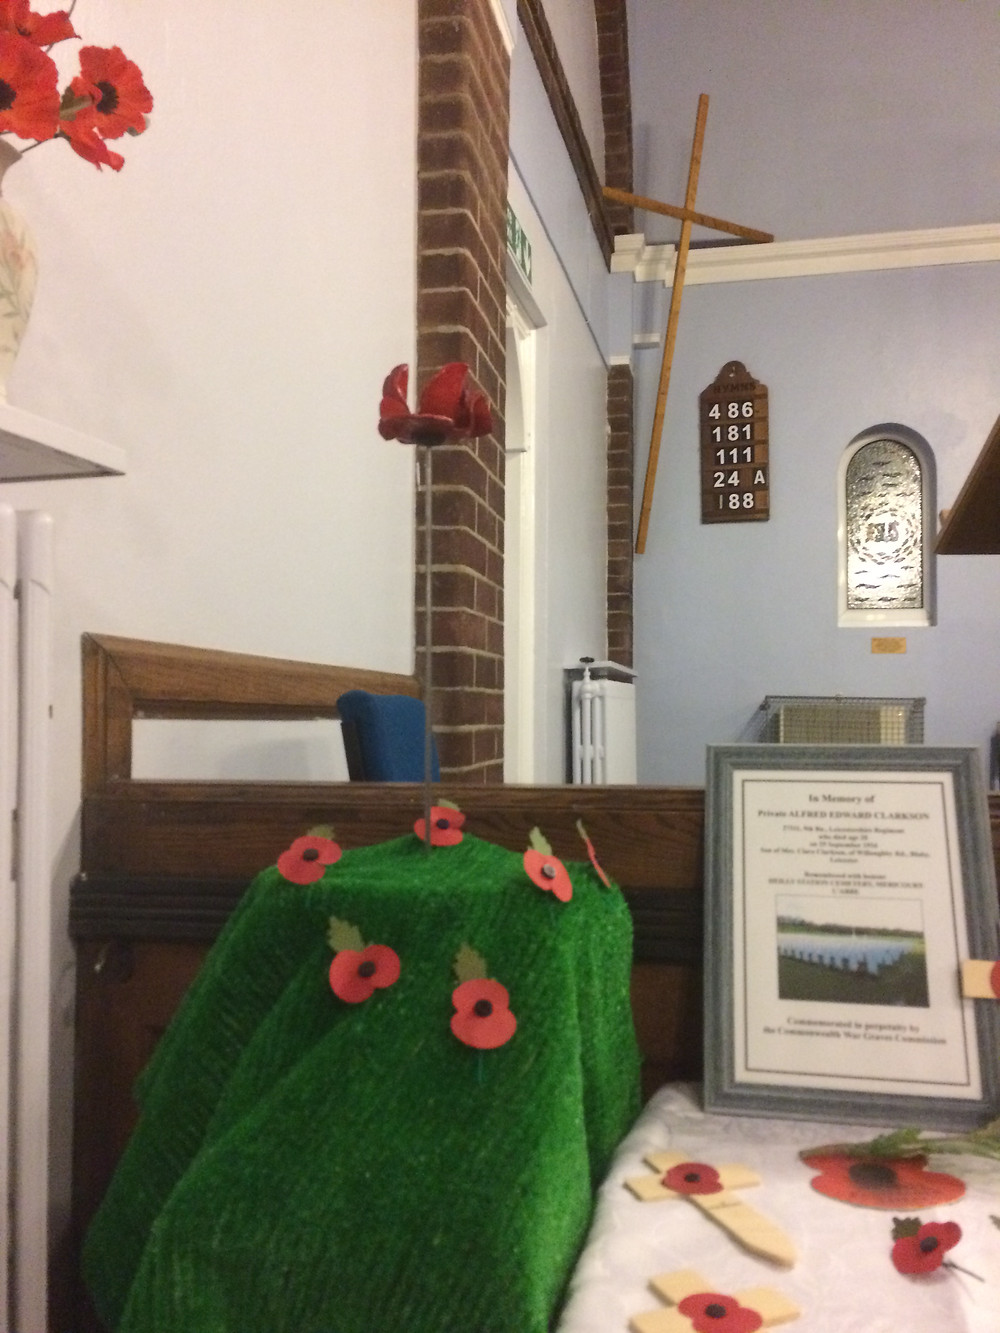 Remembrance Display at Blaby Congregational Church